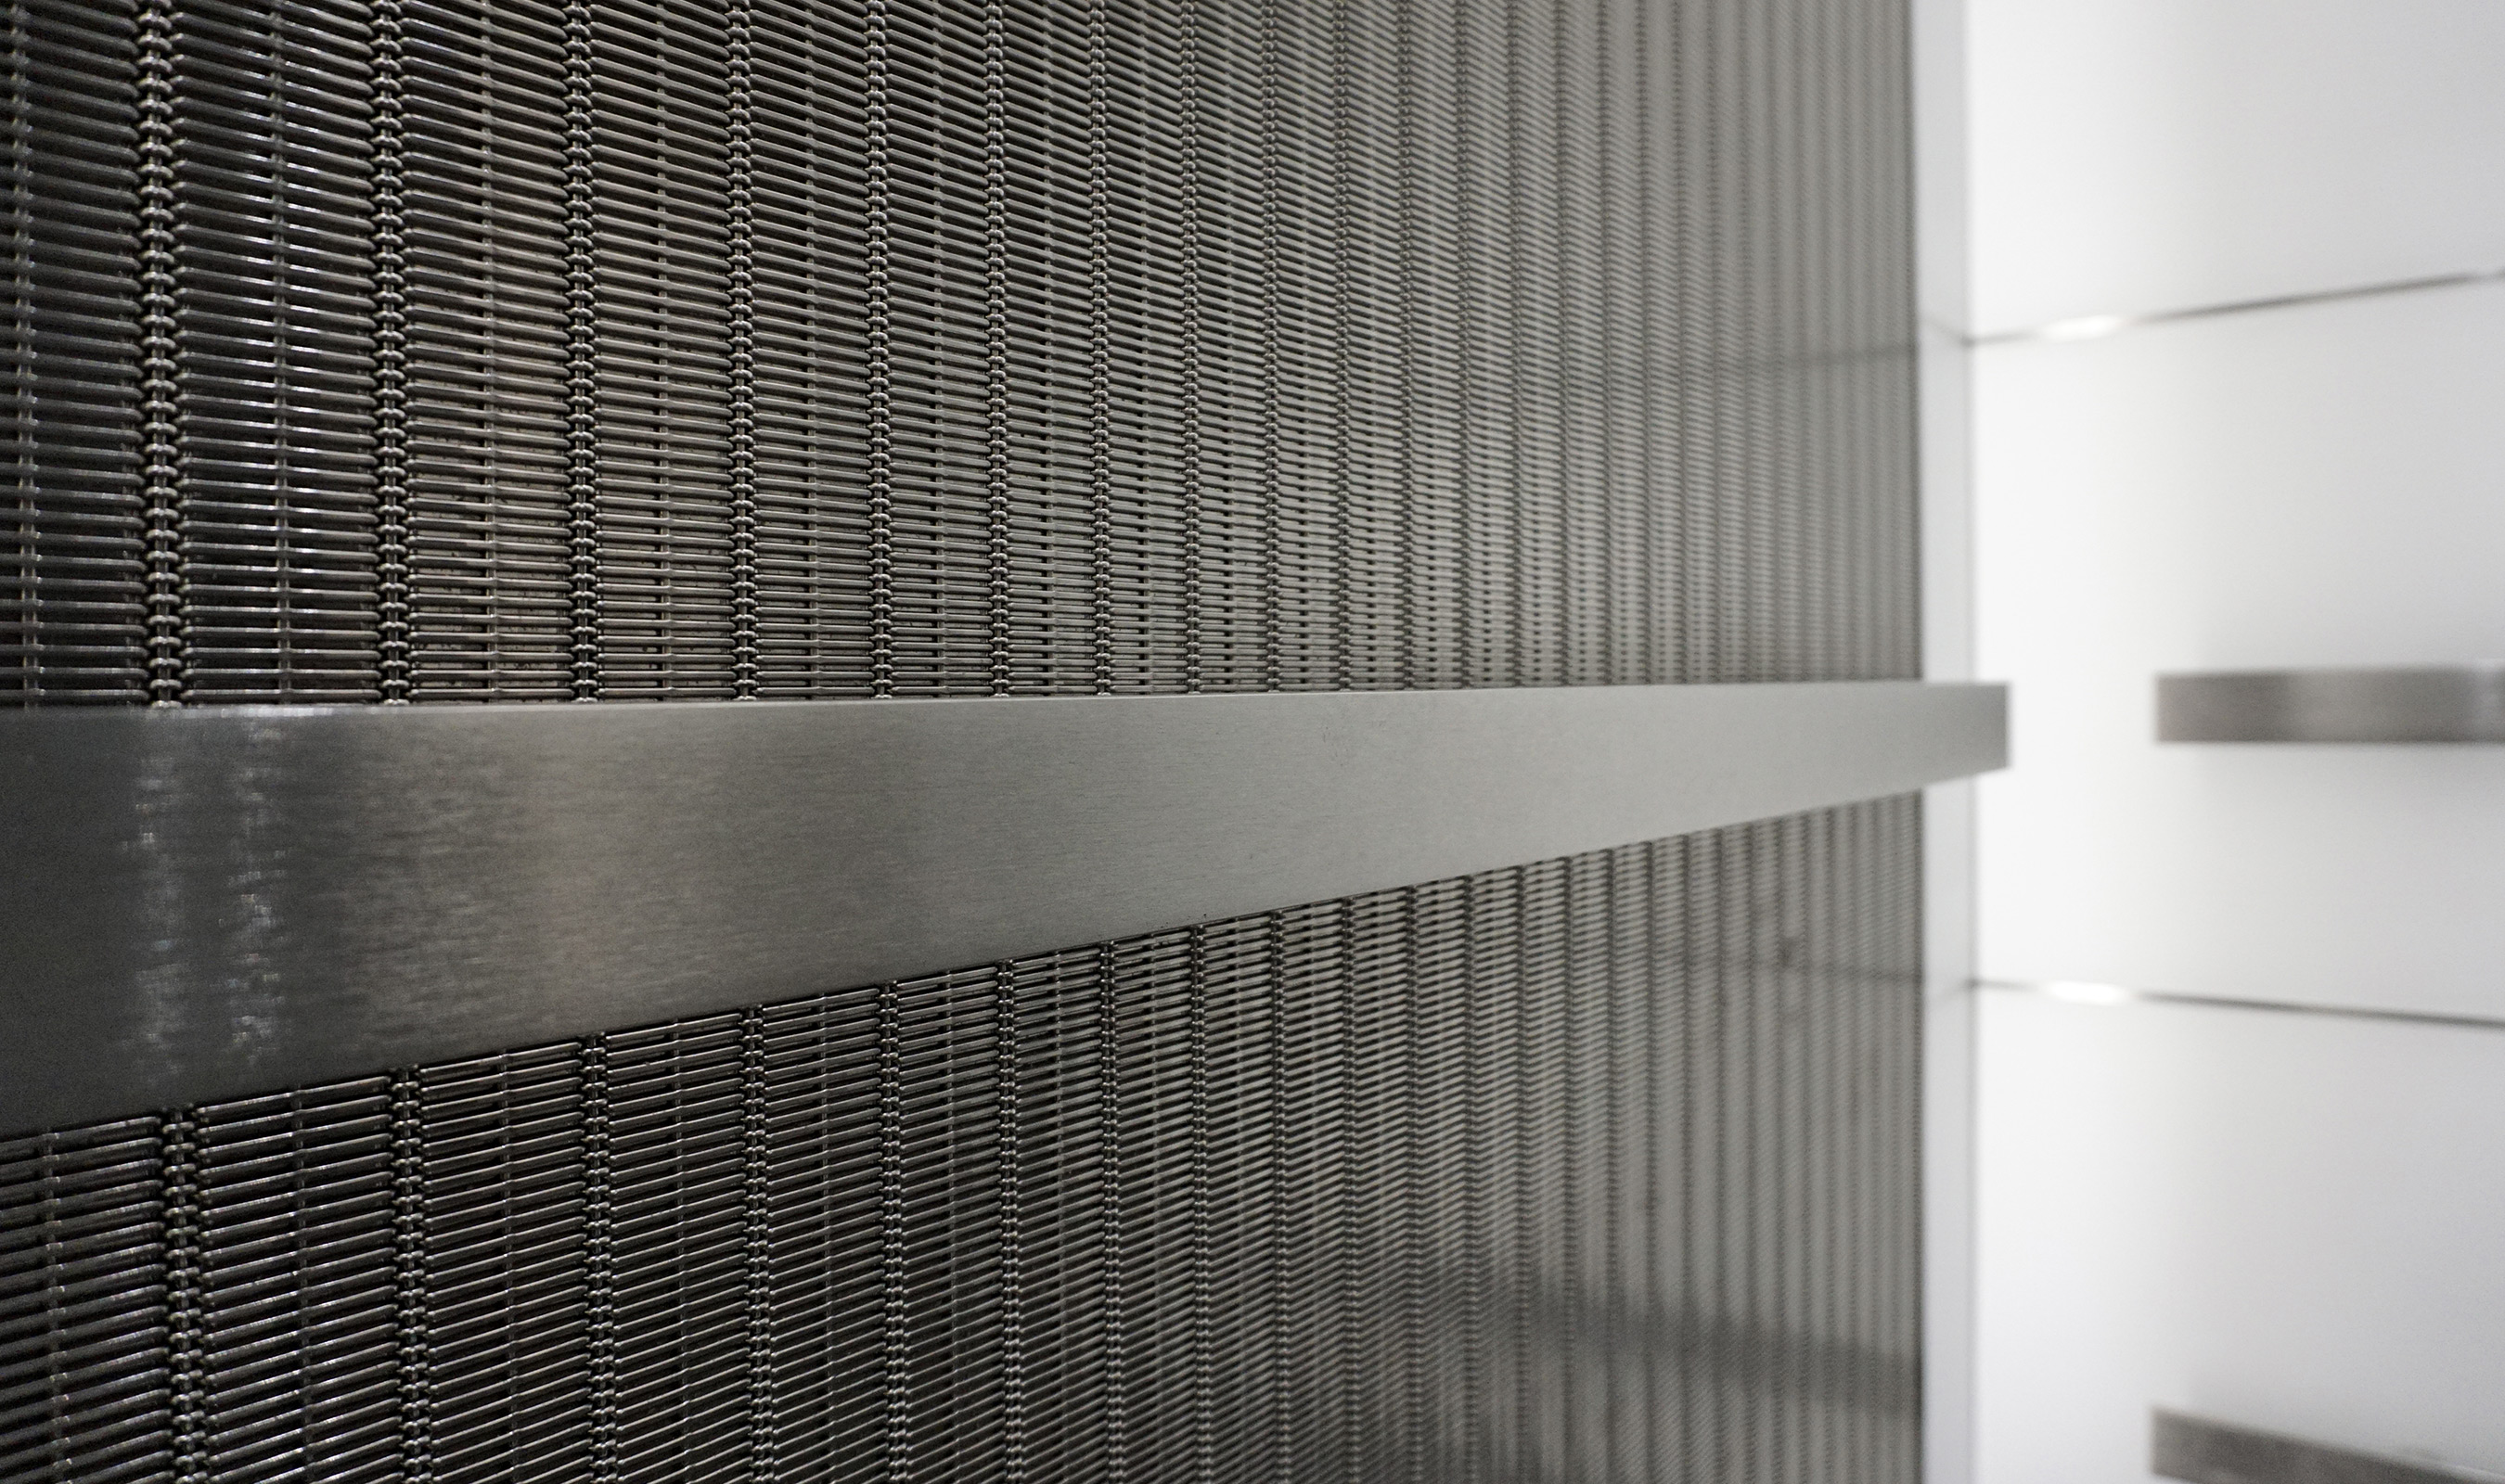 DF-6 wire mesh pattern used as elevator architectural cladding wall panels